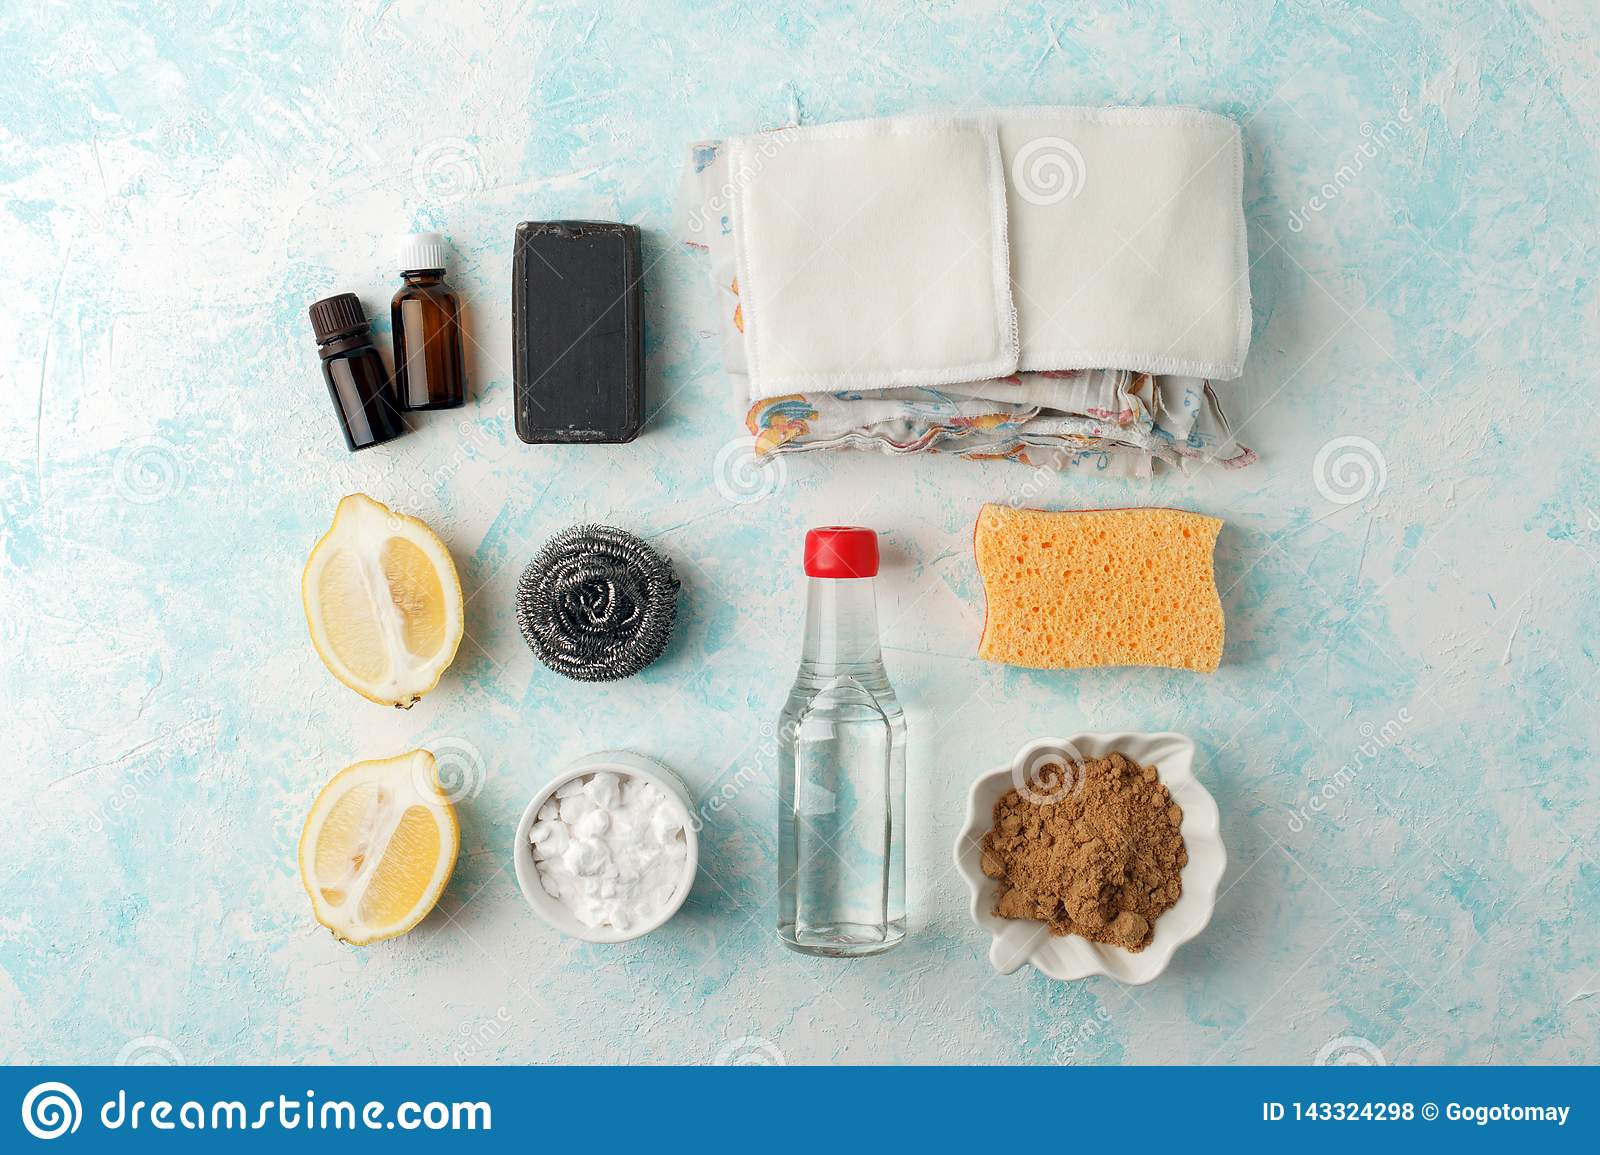 Set of eco-friendly natural cleaning products on wooden kitchen table: mustard, soda, essential oils, cellulose sponge, rags,